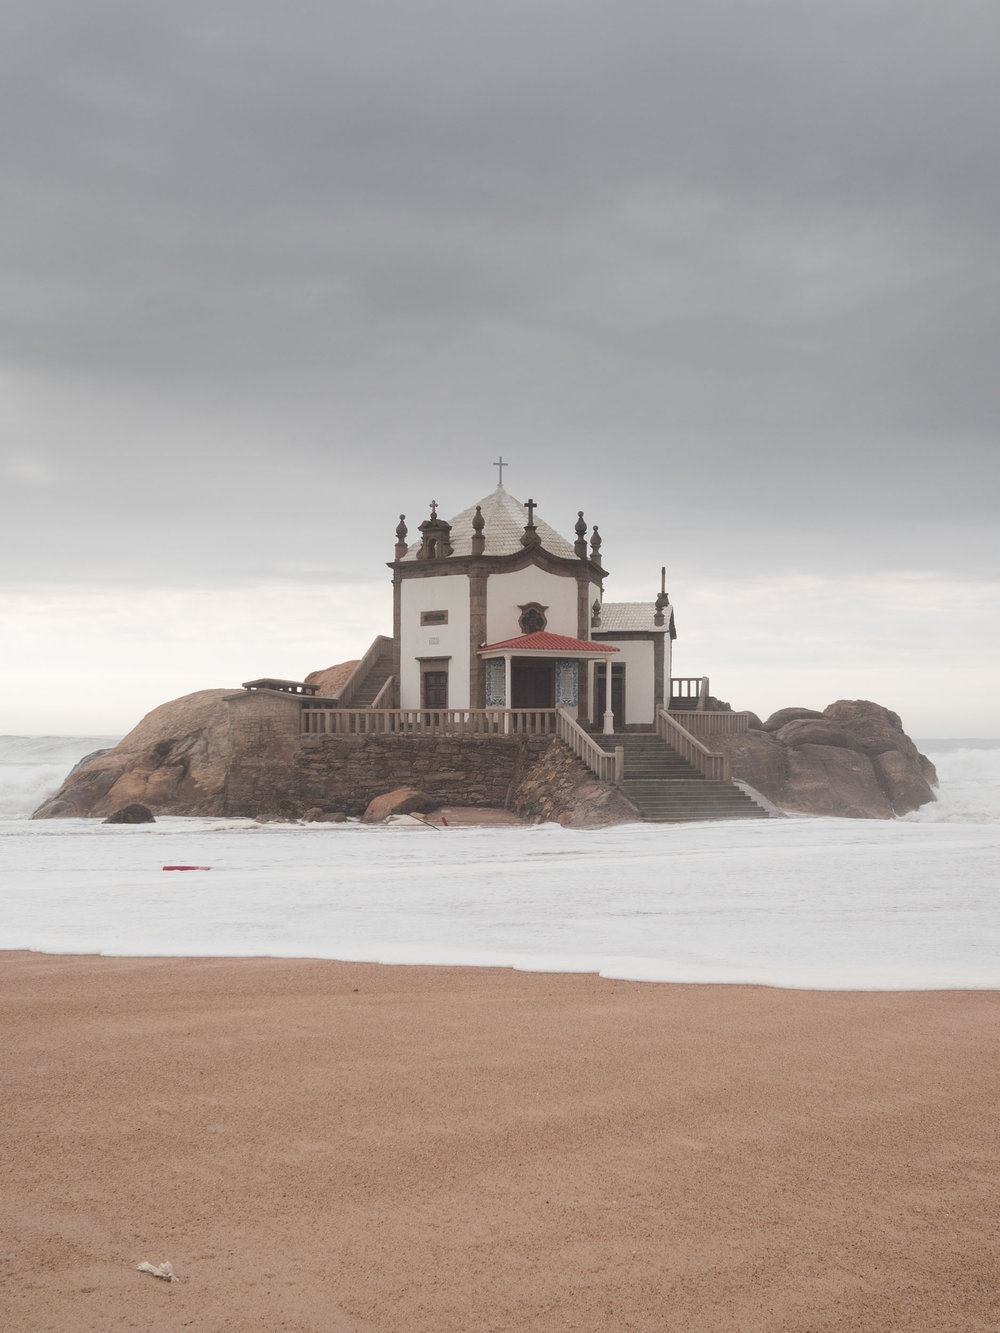 Chapel of Senhor da Pedra in Portugal.